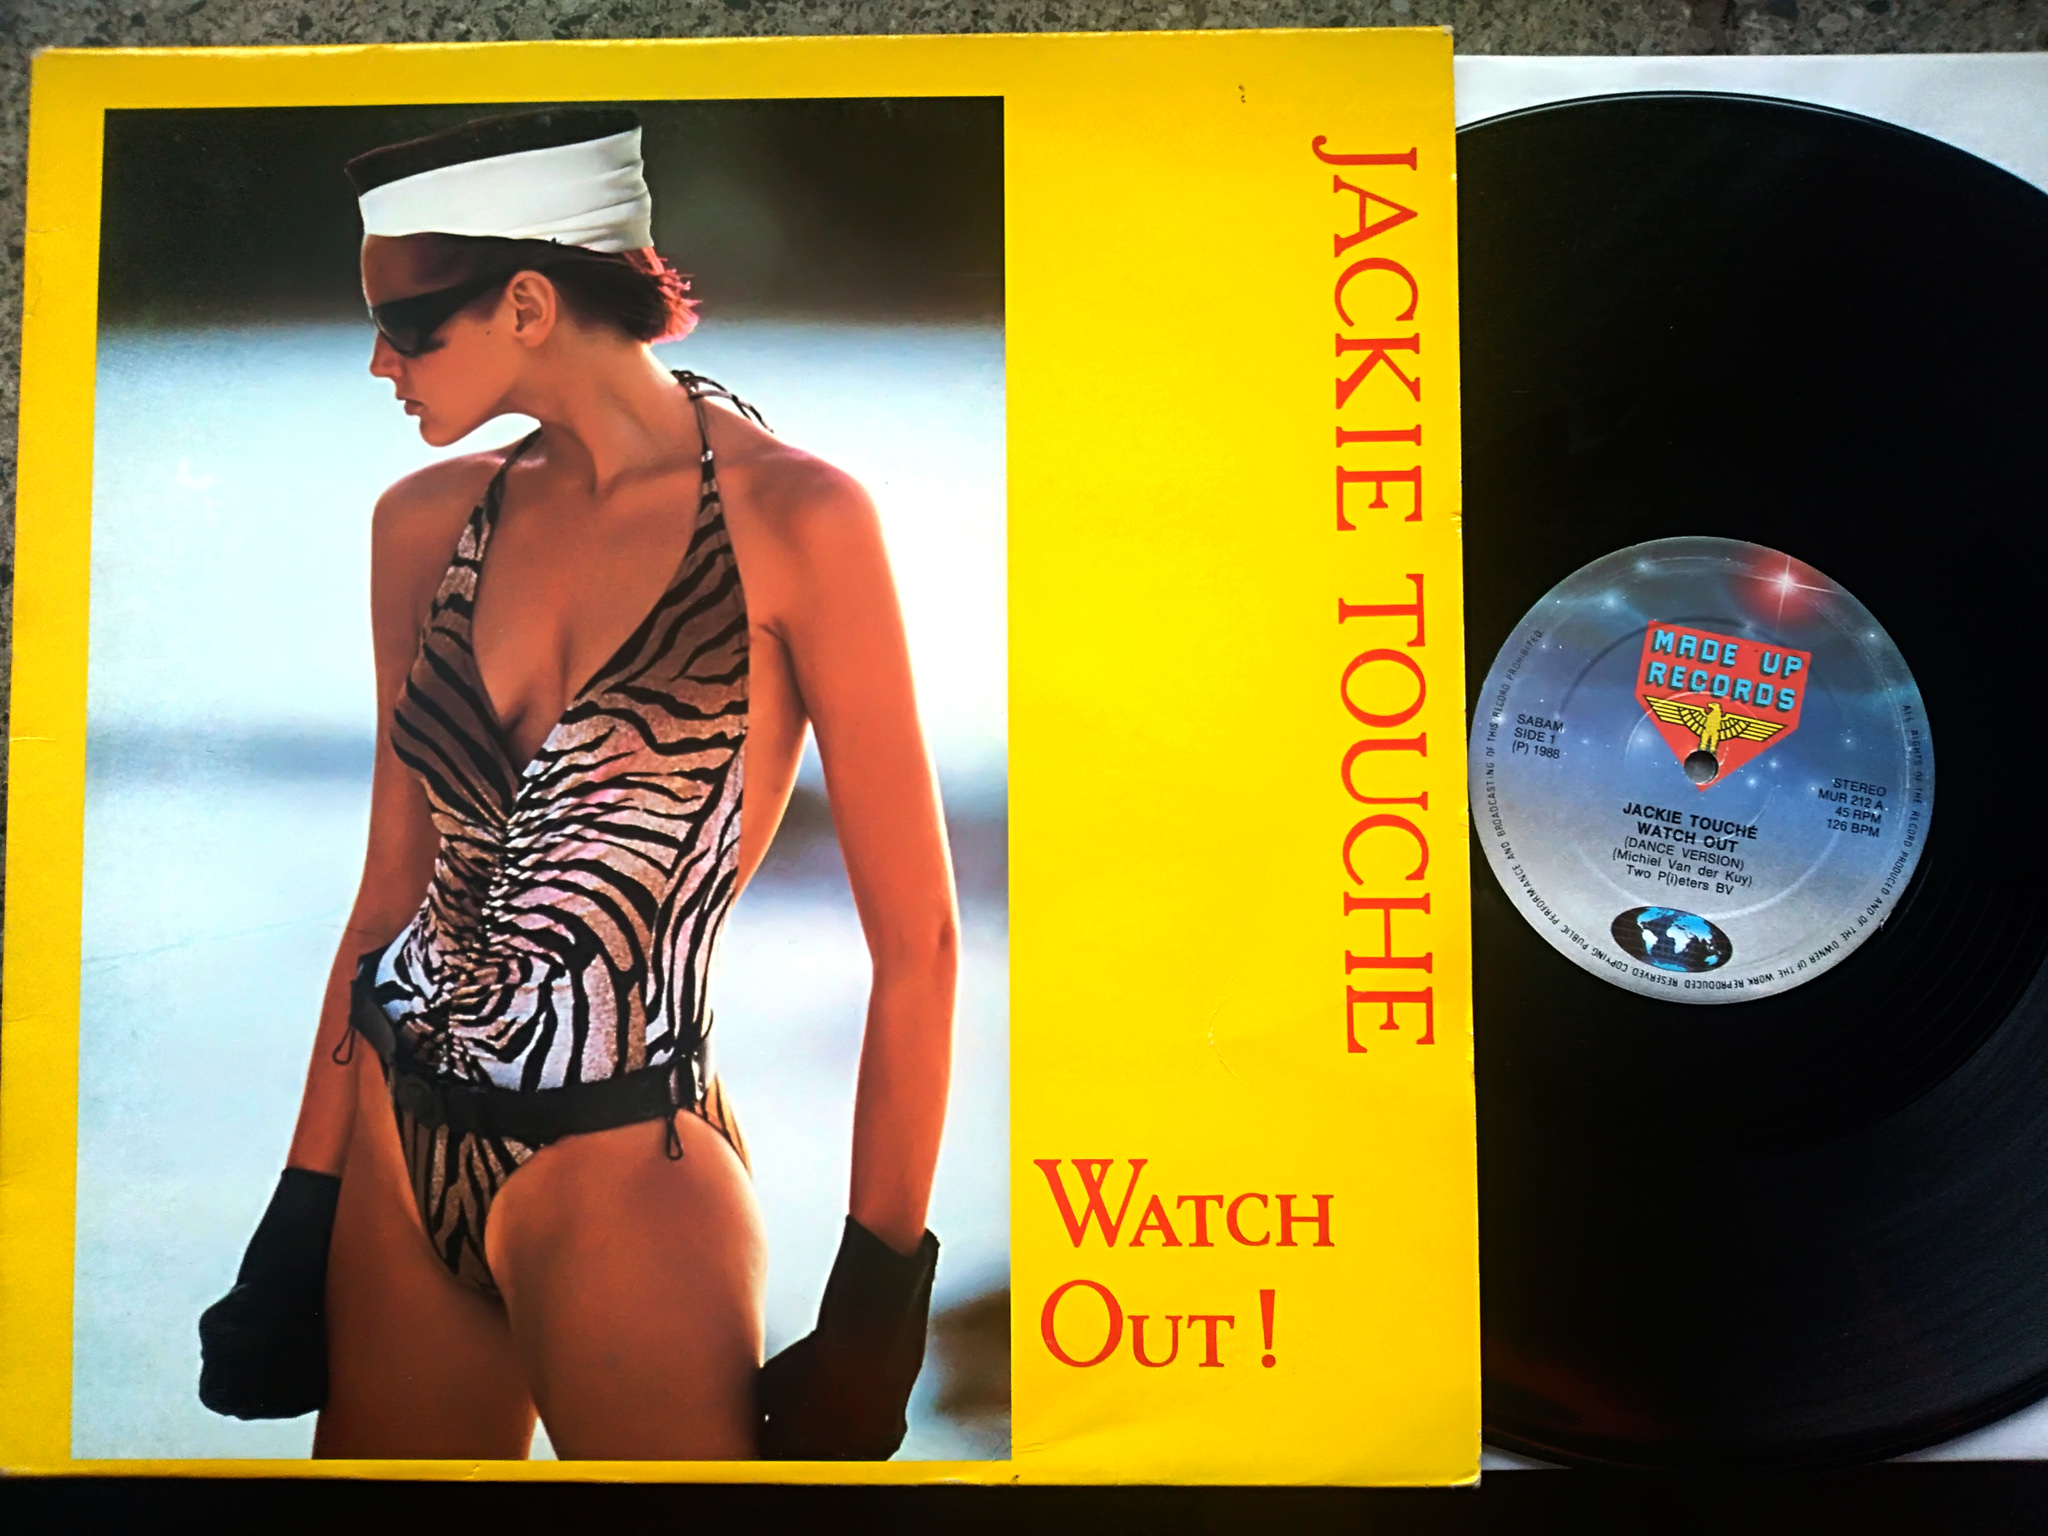 Jackie Touche - Watch Out!